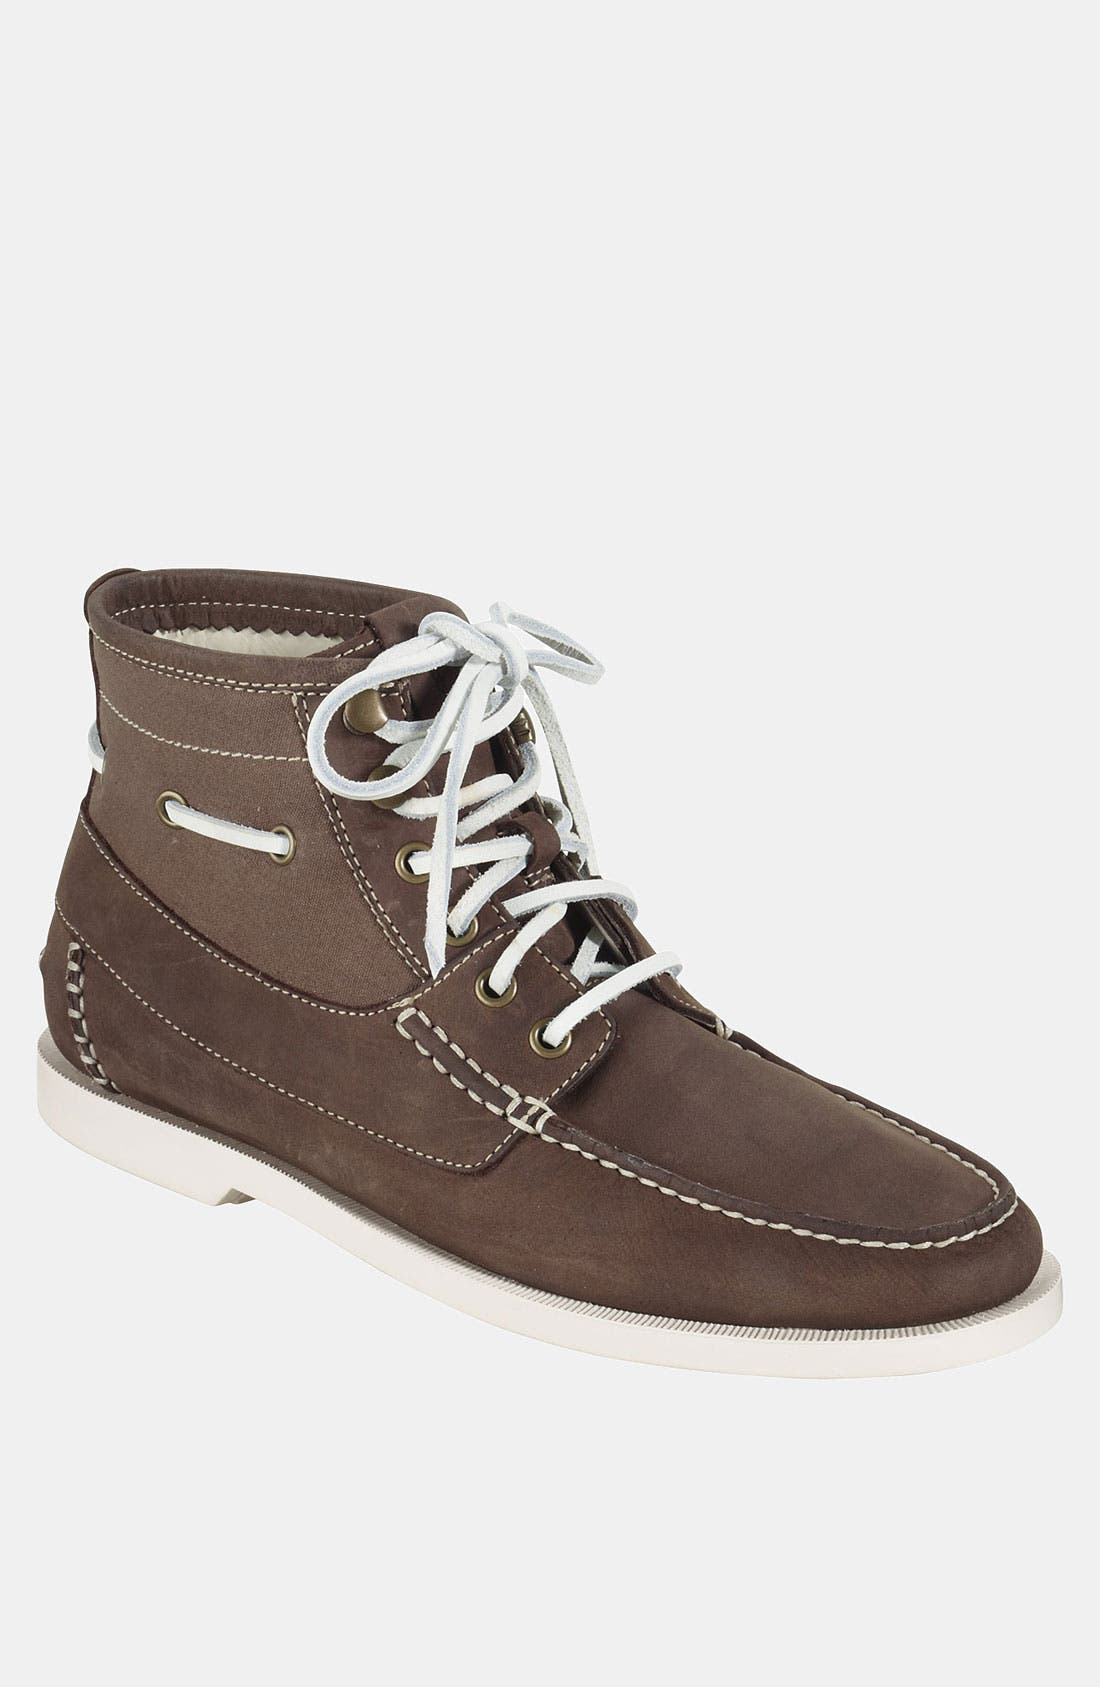 Alternate Image 1 Selected - Cole Haan 'Air Yacht Club' Lace-Up Boot